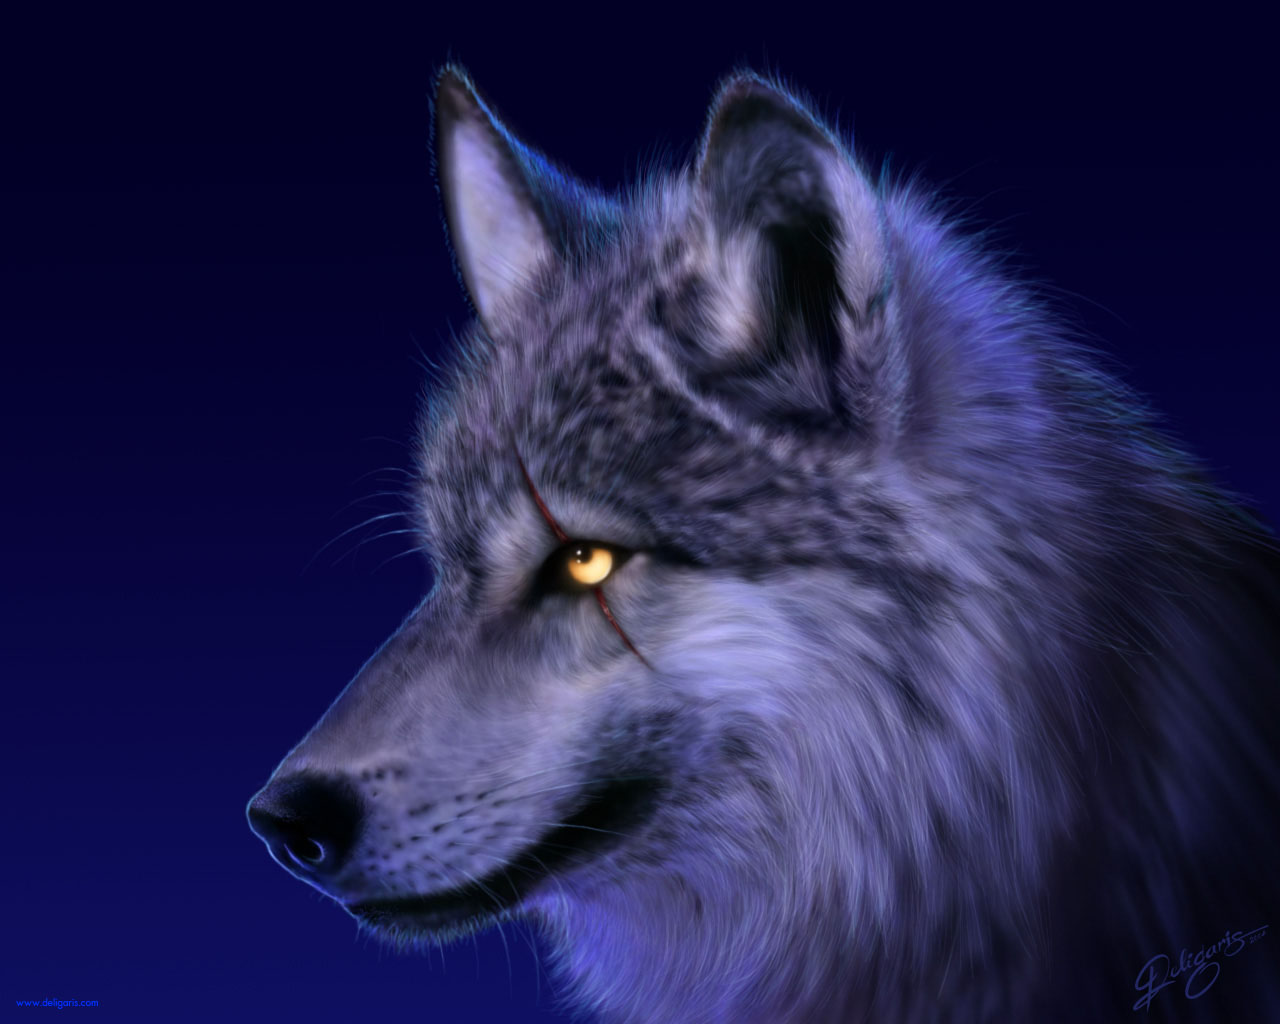 Wolf Wallpaper 10742 Hd Wallpapers in Animals   Imagescicom 1280x1024